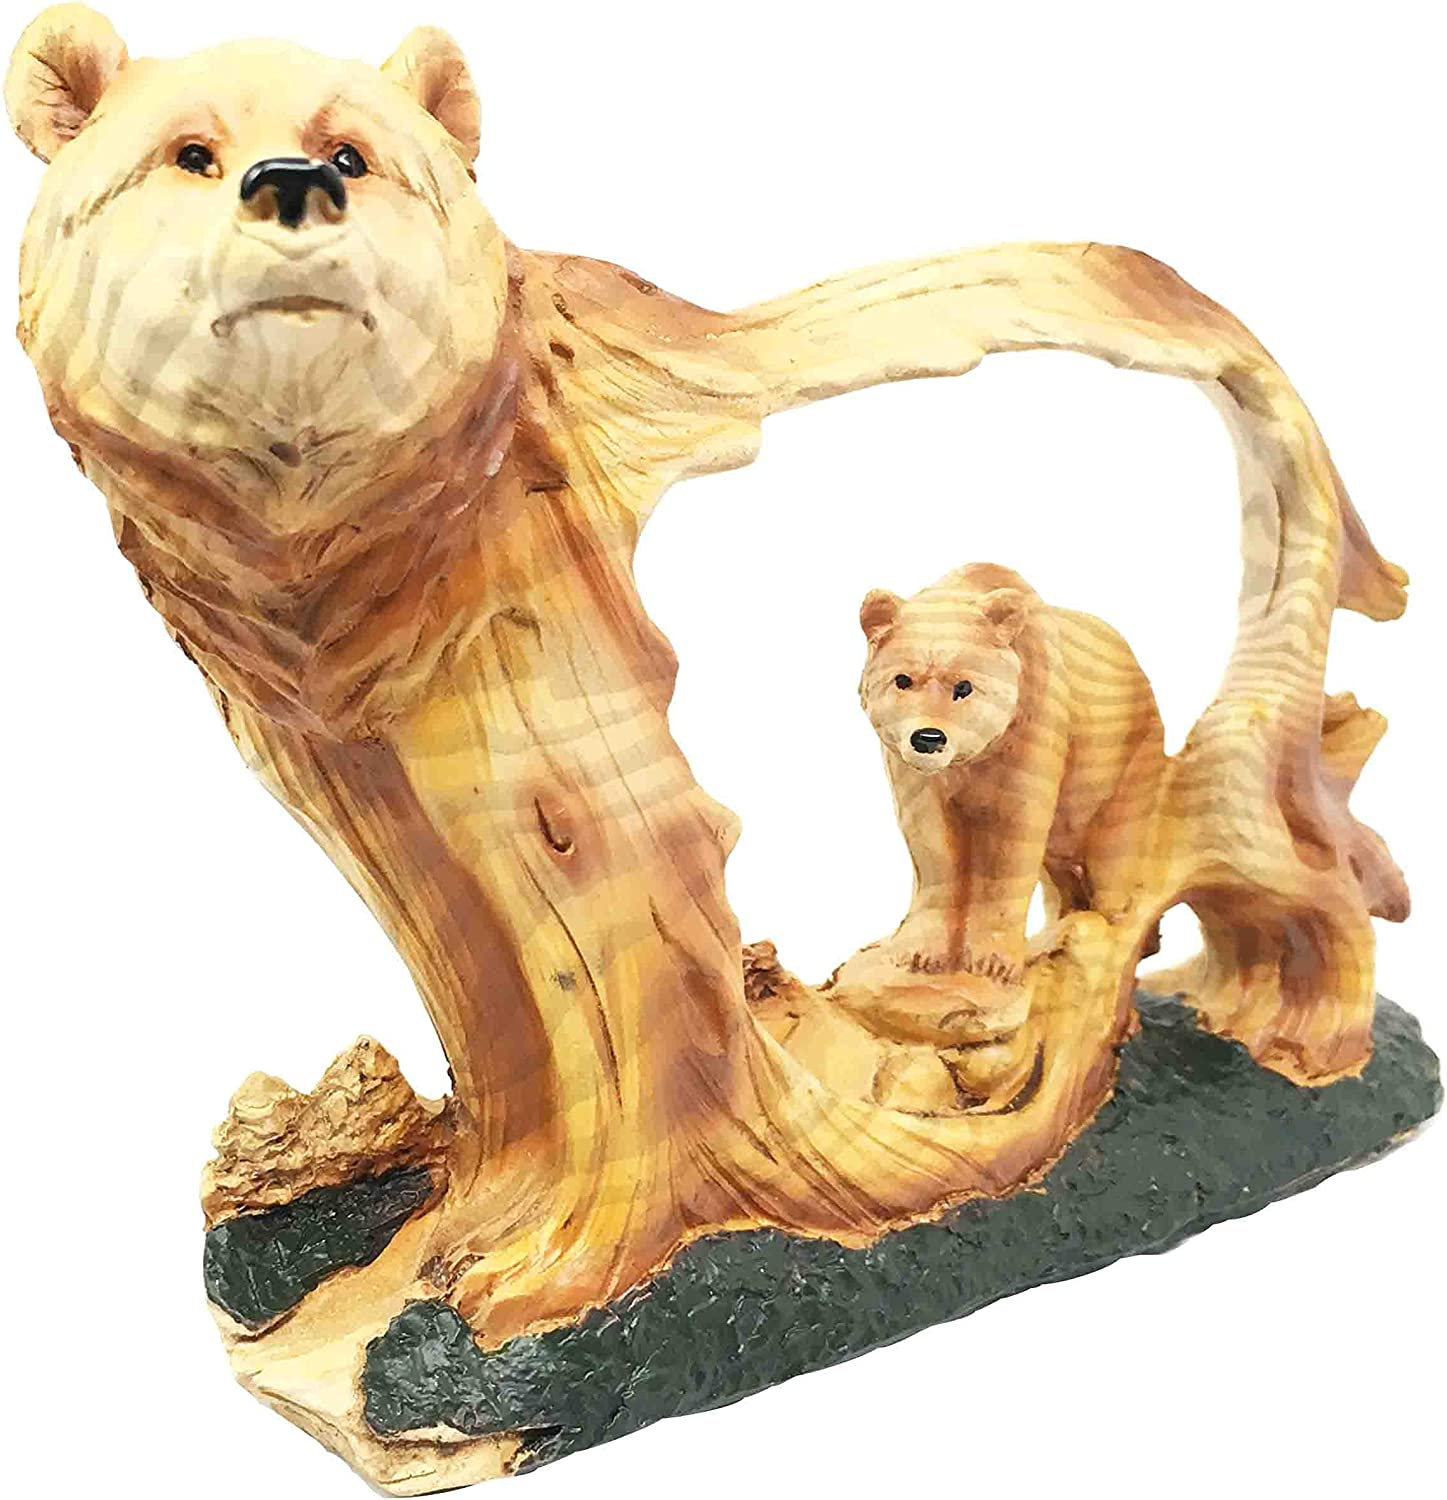 Ebros Nature Rustic Faux Wood Wildlife Grizzly Bear With Cub Roaming The Forests Figurine Wildlife Animal Decor Statue For Fans Of Bears Hunters Outdoors Cabin Western Themed Decors